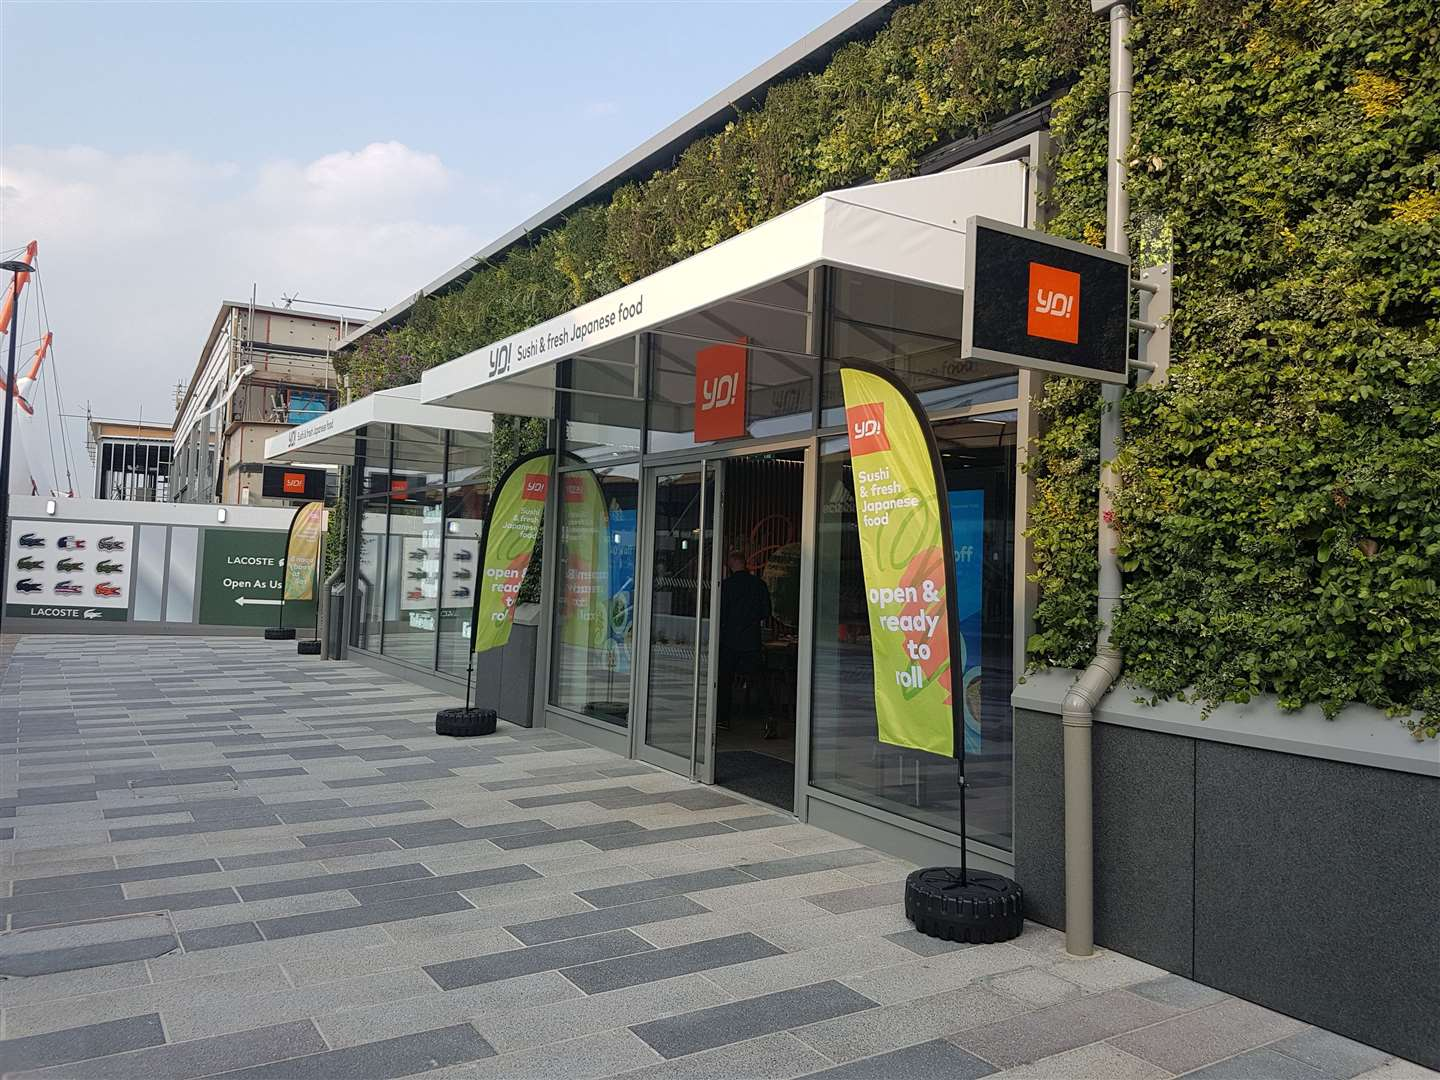 The exterior of the new YO! Sushi branch features part of a living wall which will cover the Ashford Designer Outlet's extension. (10794764)